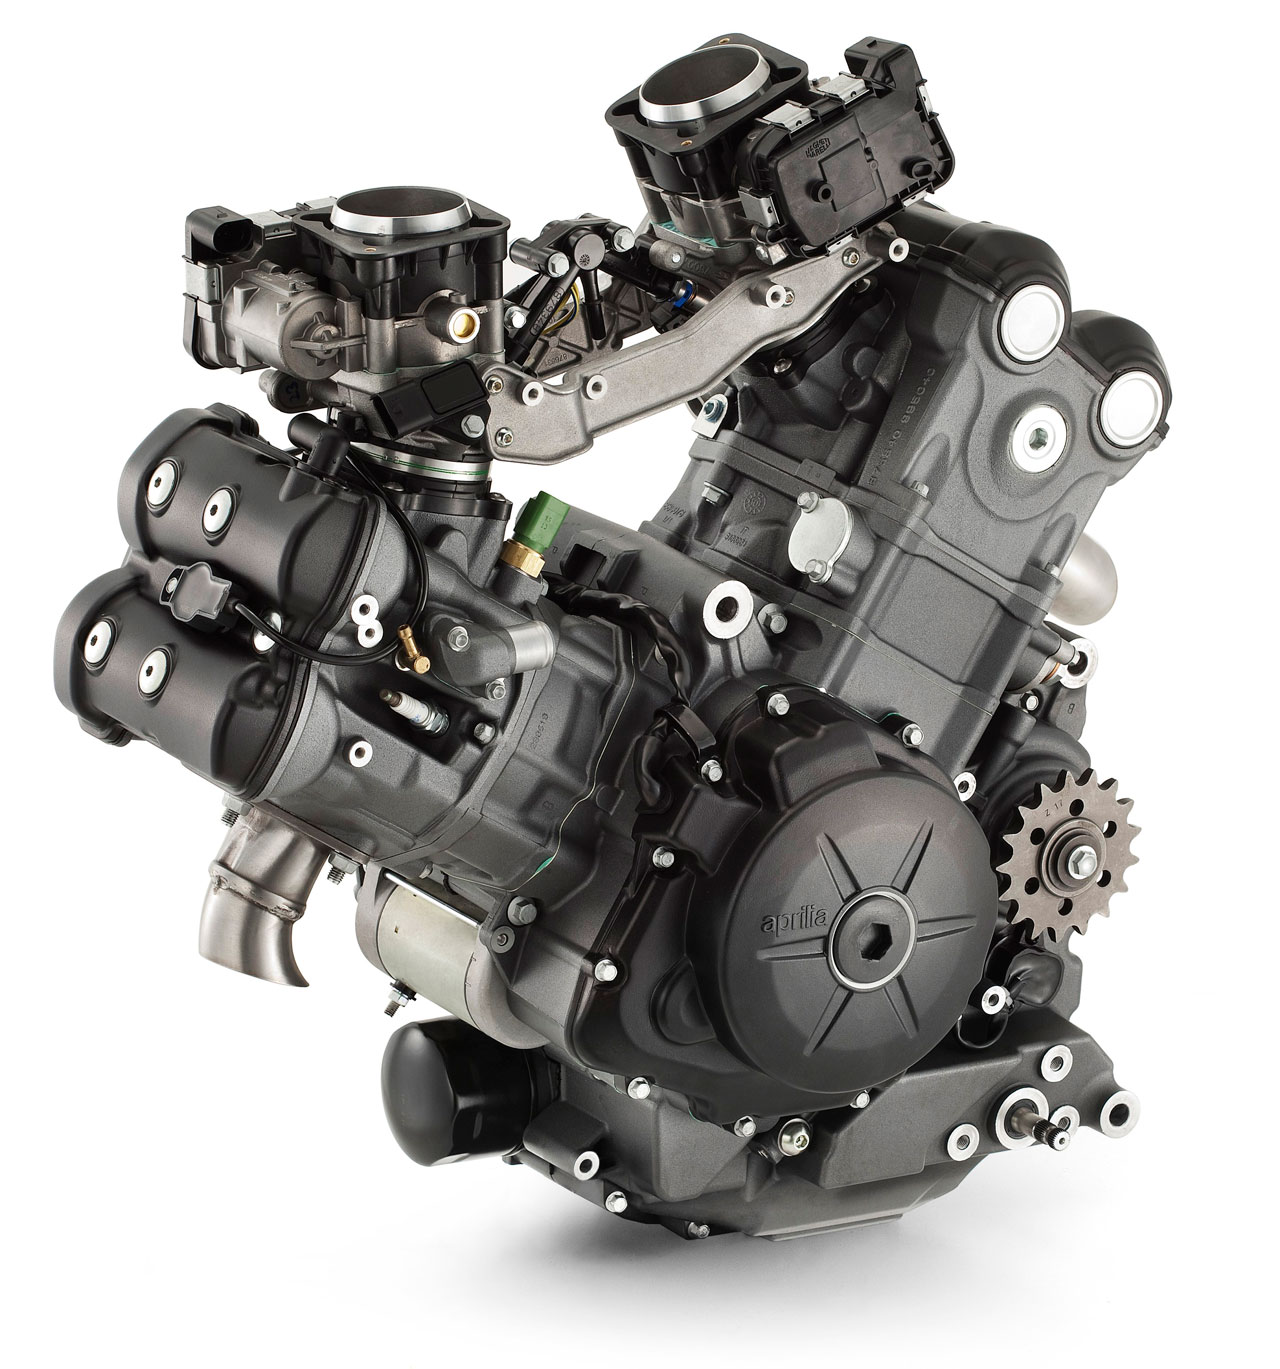 Yamaha 4 Cylinder Motorcycle Engine: 2013 Aprilia Dorsoduro 1200 Engine